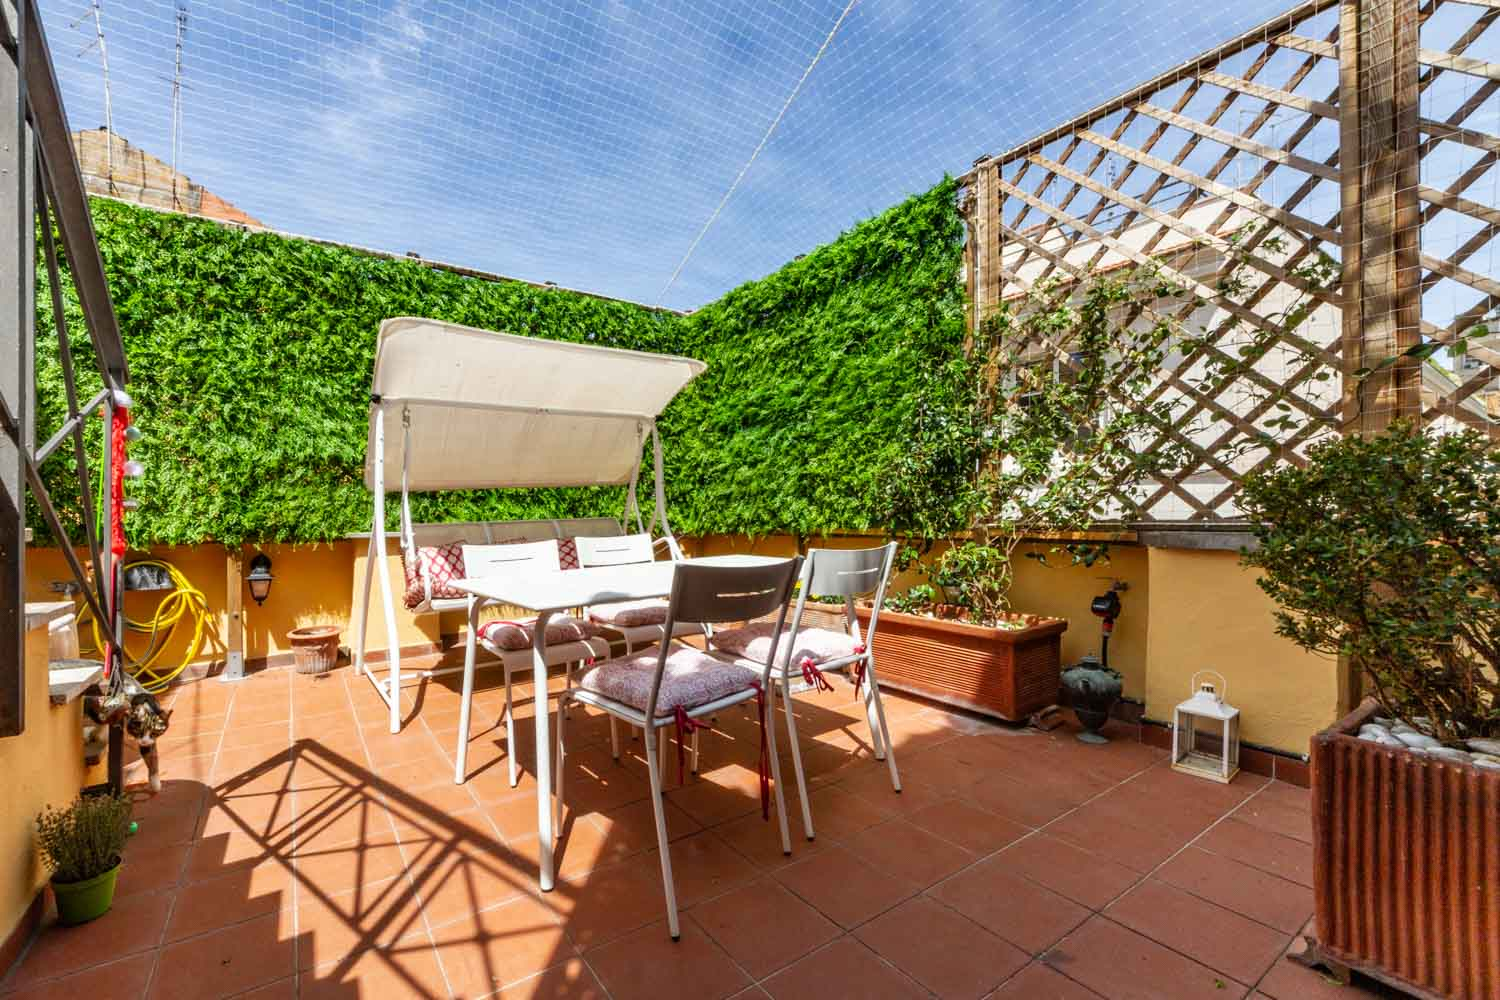 Penthouse for Sale in Rome: a Charming Property with Terrace